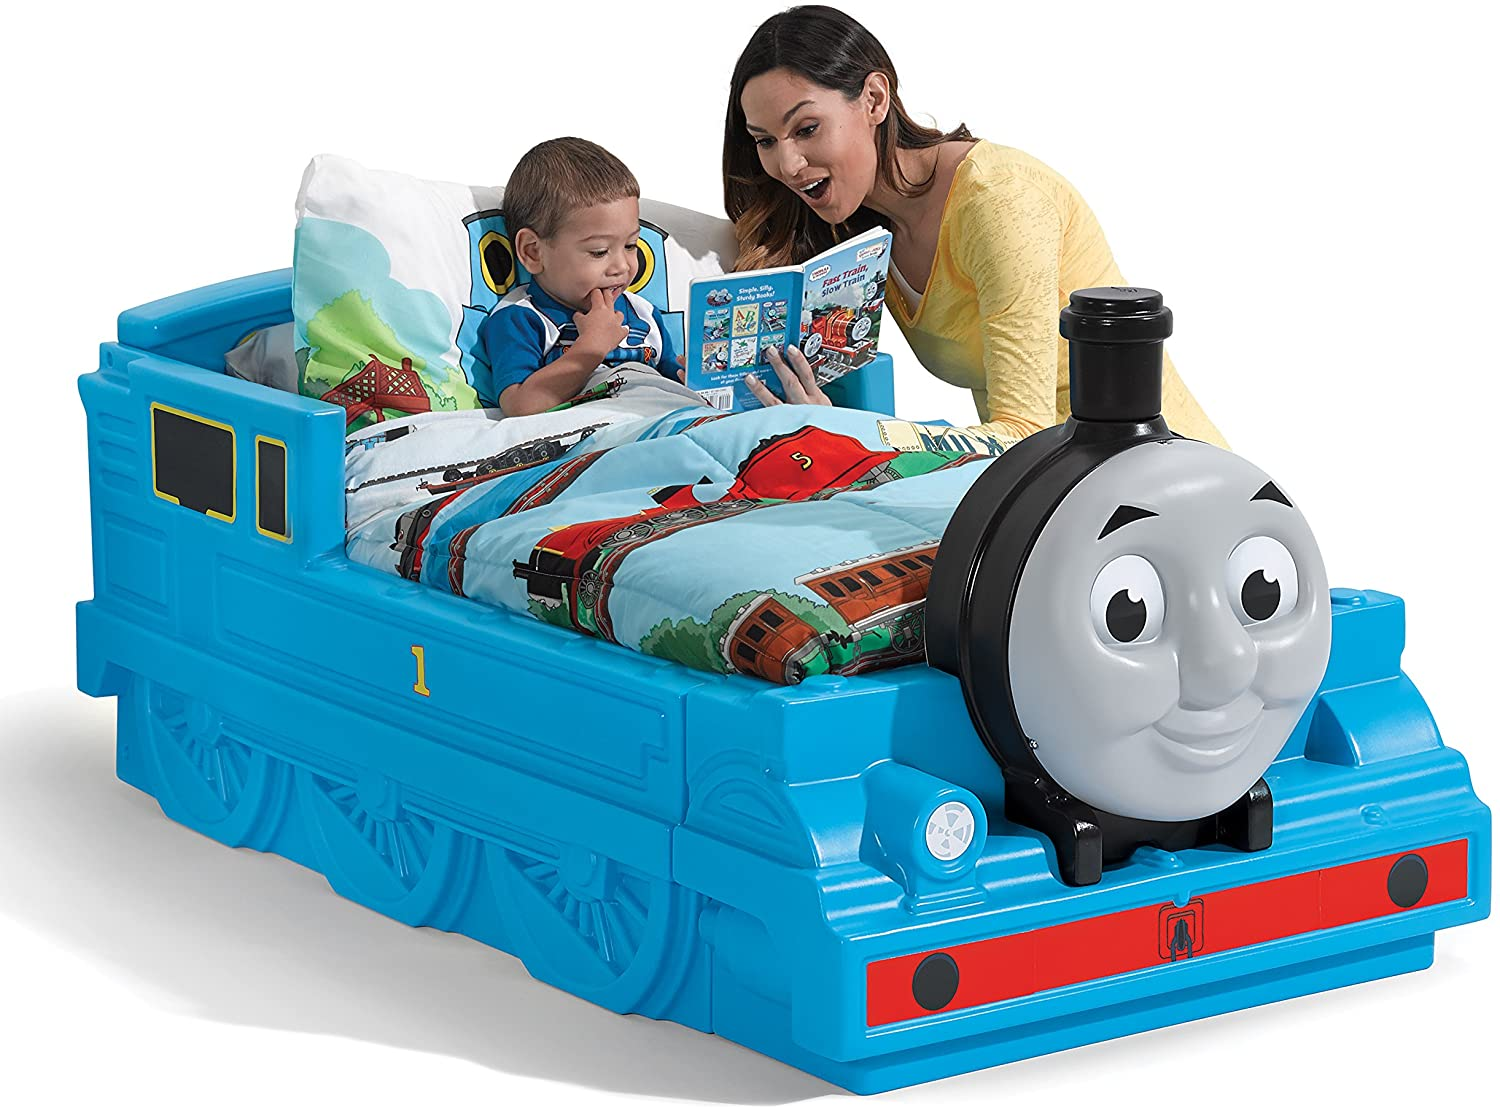 Step2 Thomas the Tank Engine Toddler Bed Review - The Best Branded Kids Bed 10